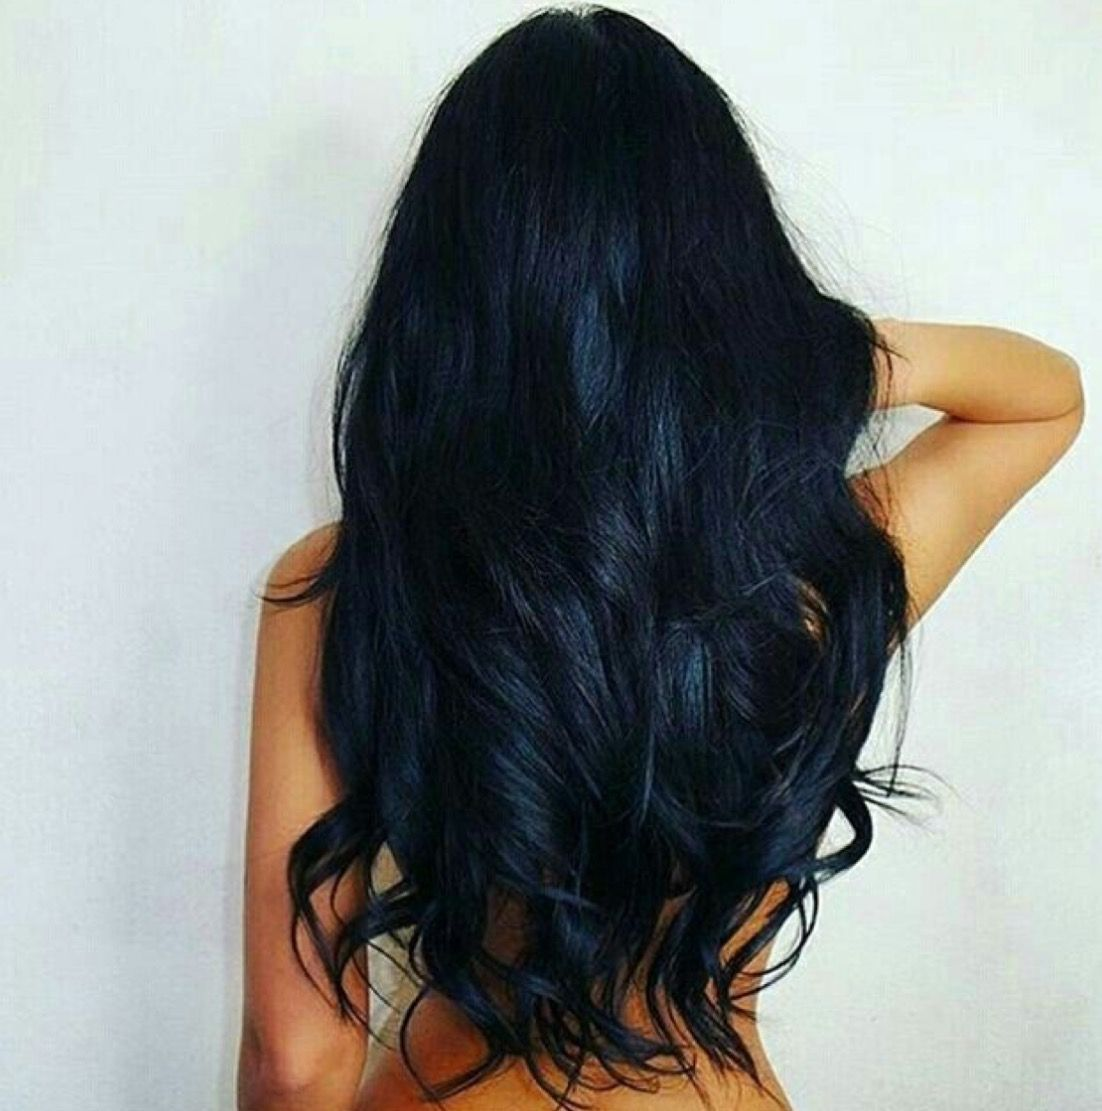 Blue Black All Over Color On Long Wavy Hair Stunning Hair